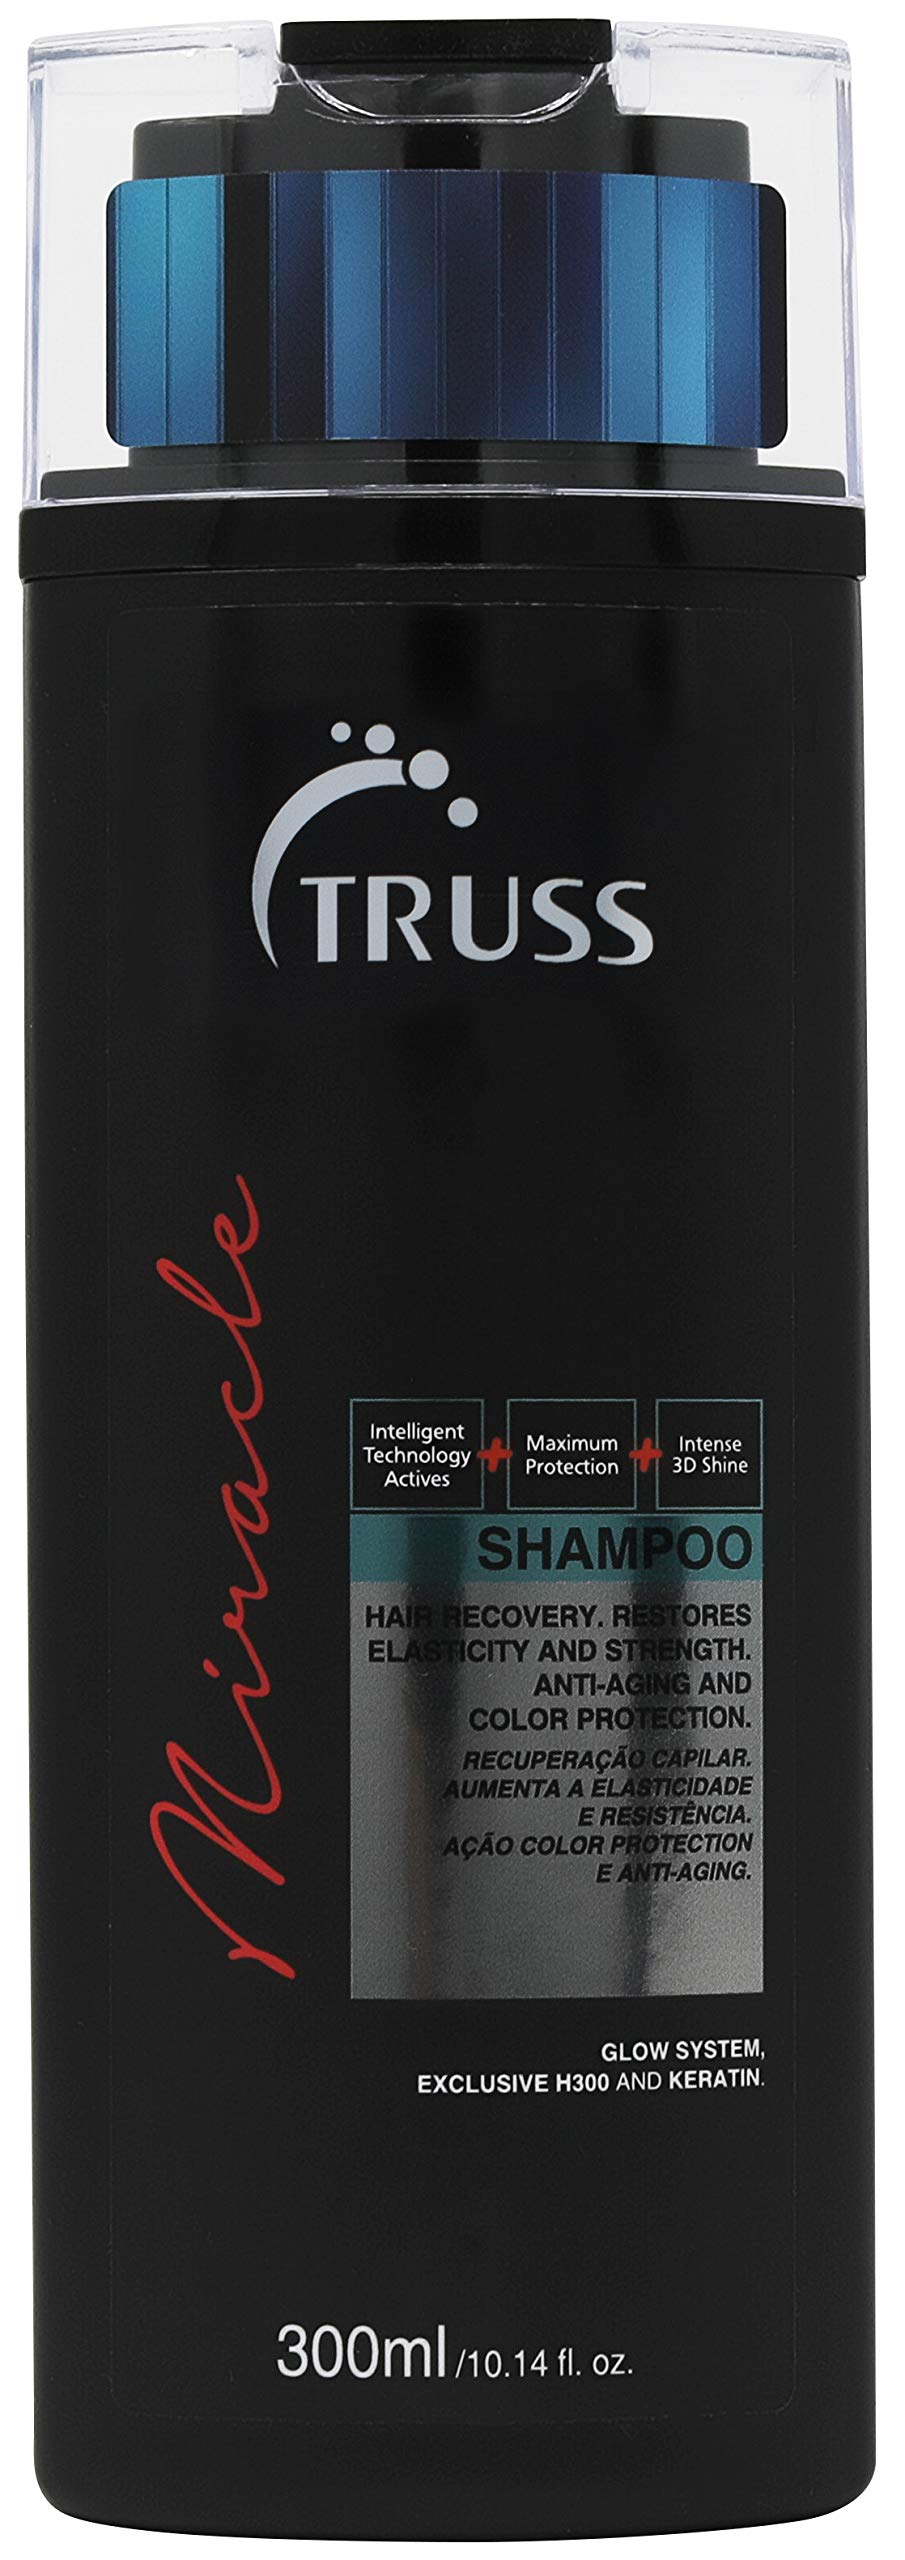 TRUSS Miracle Shampoo, 10.14 fl oz